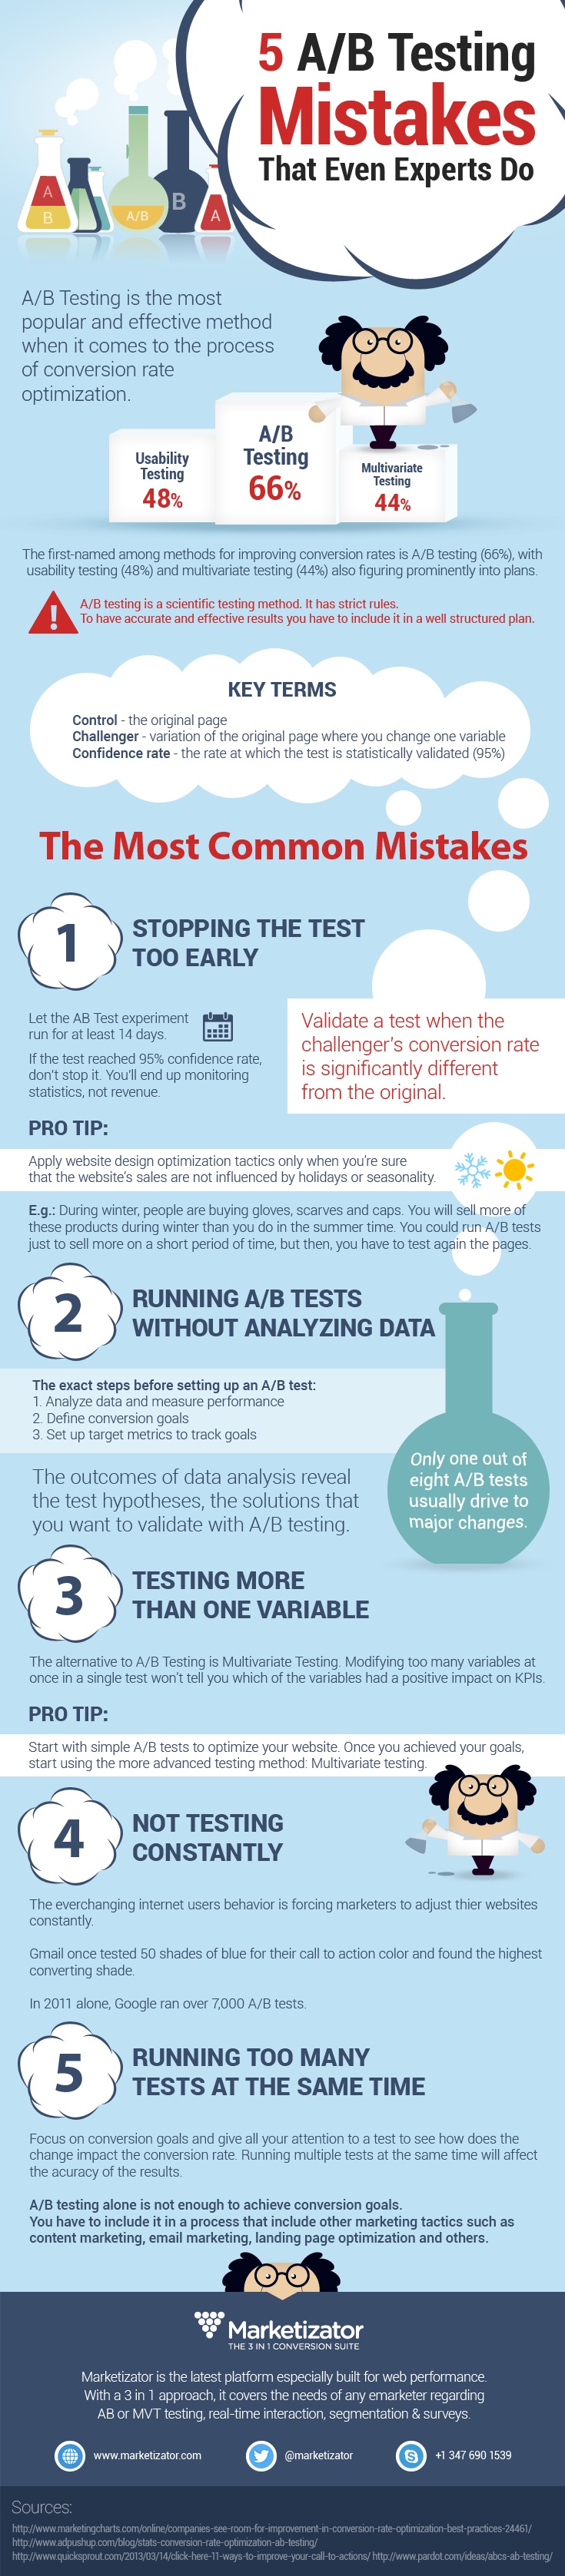 5 A/B testing mistakes